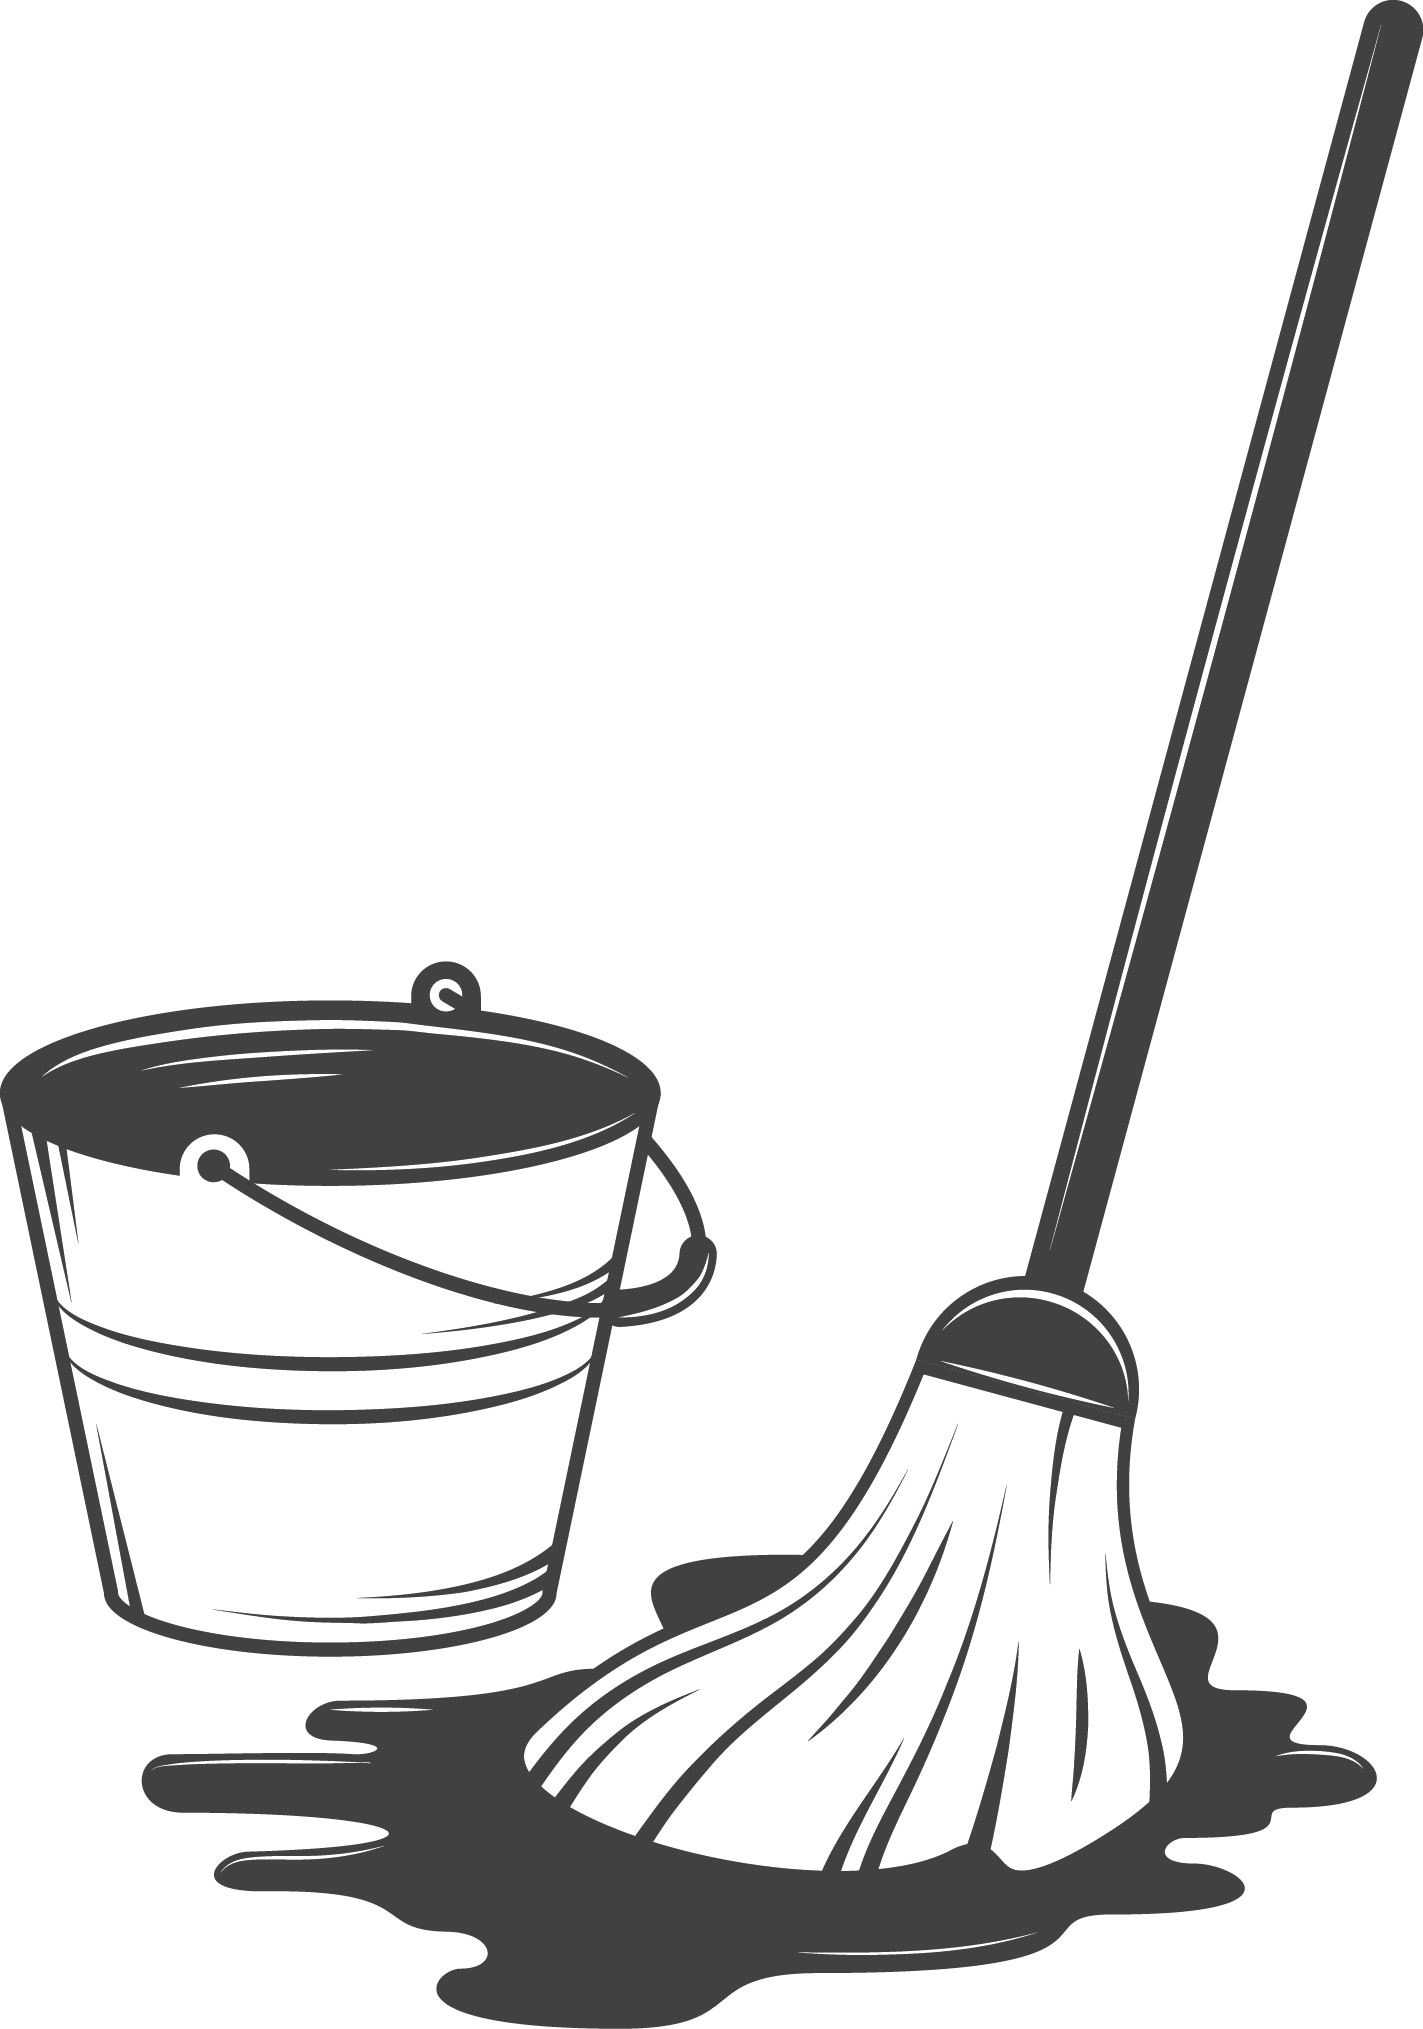 Clean clipart housekeeping tool. Cleaning illustration mop and